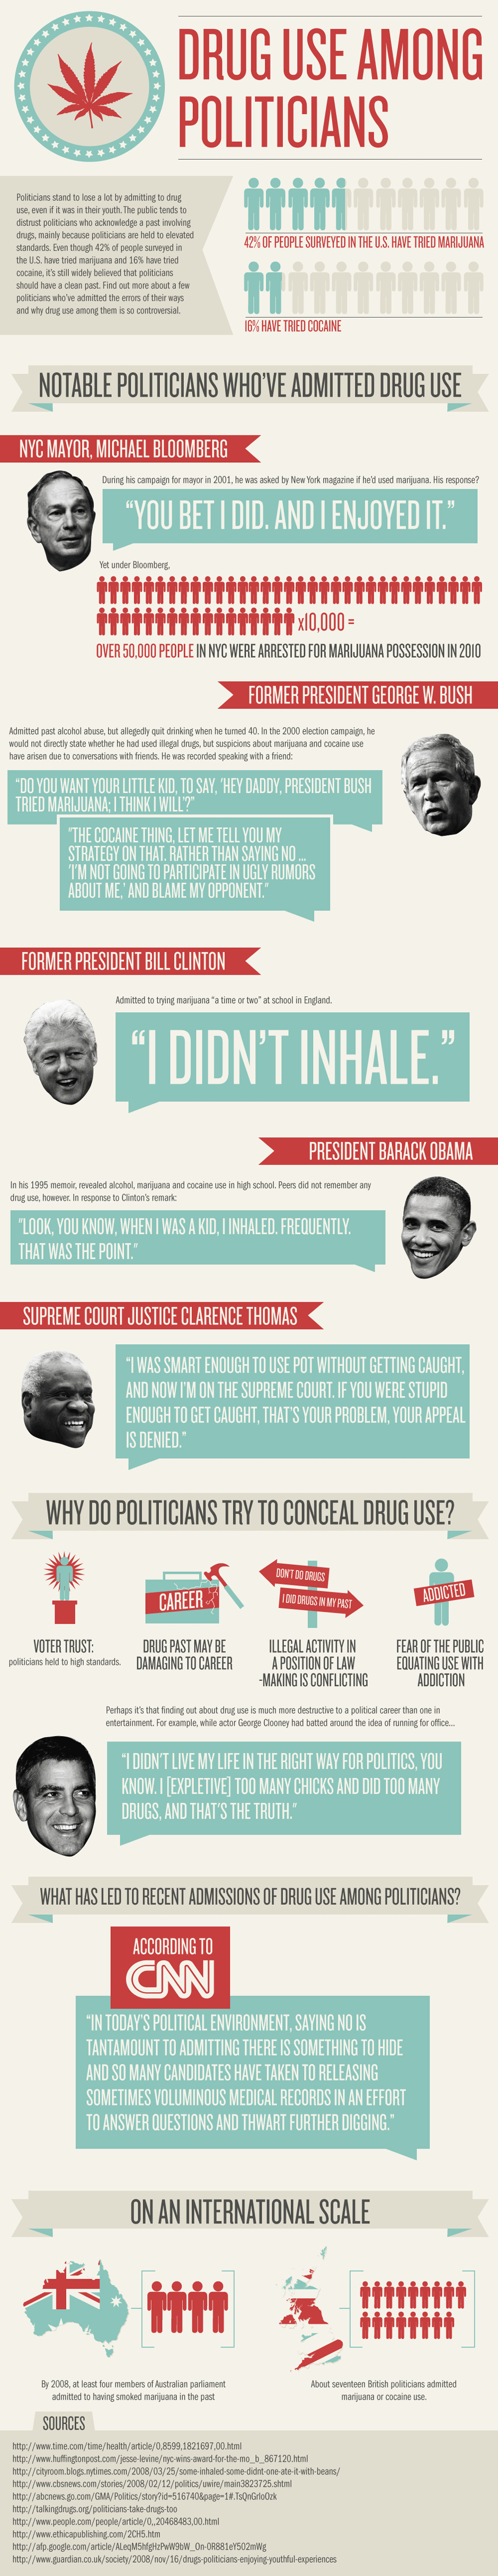 Drug Use Among Politicians